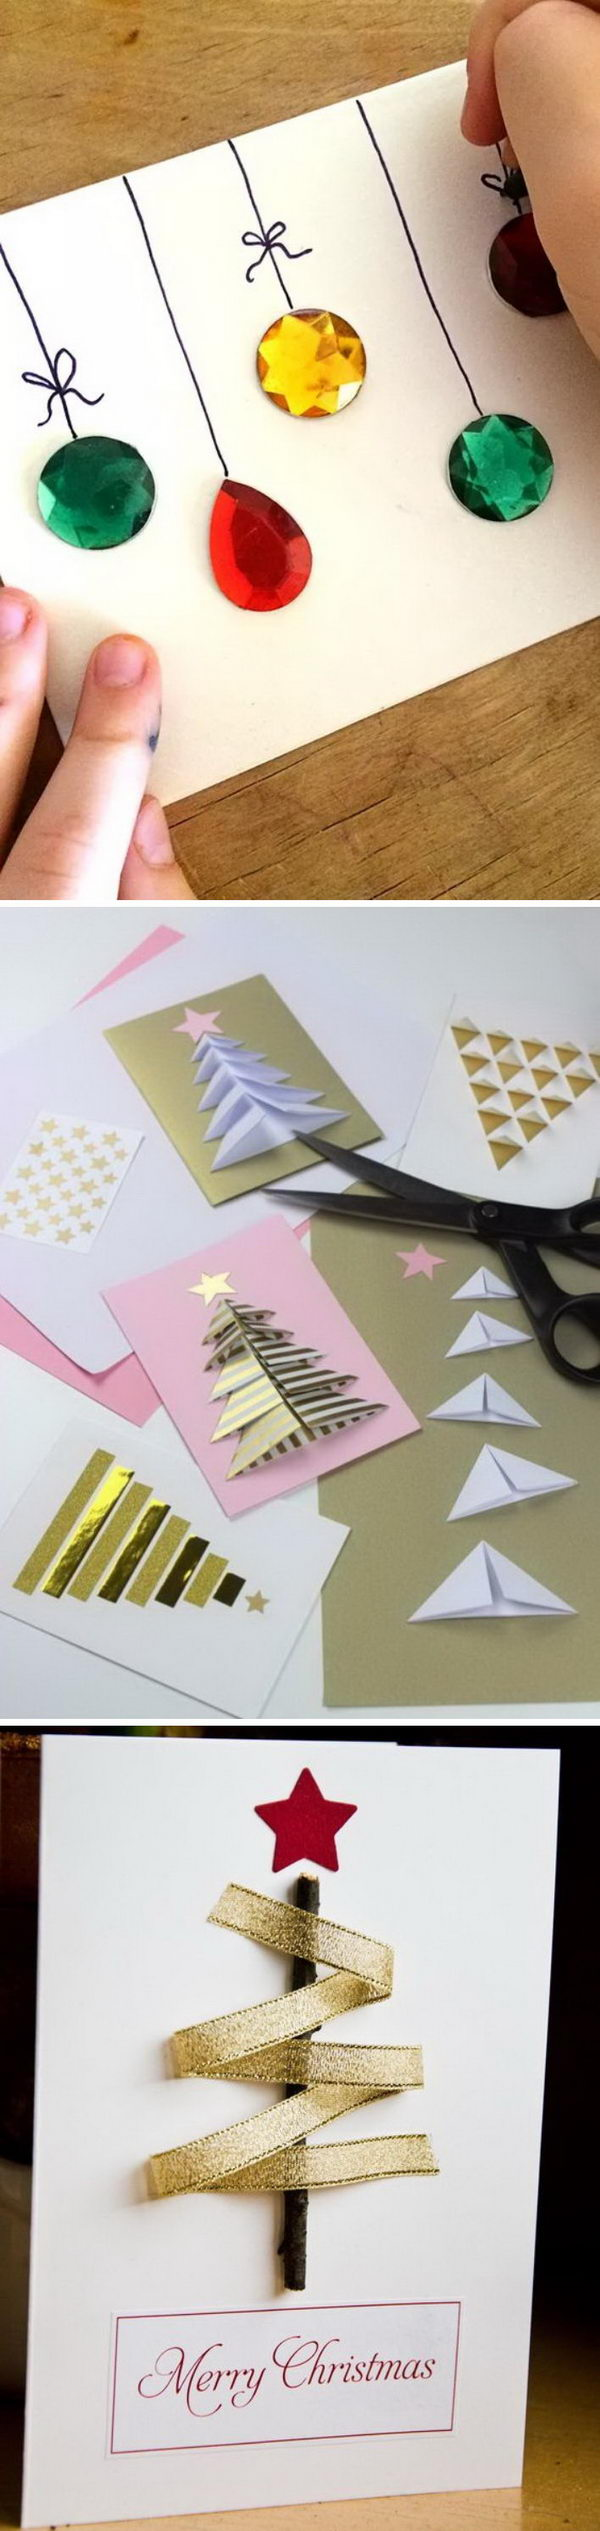 Handmade Christmas Card Ideas.